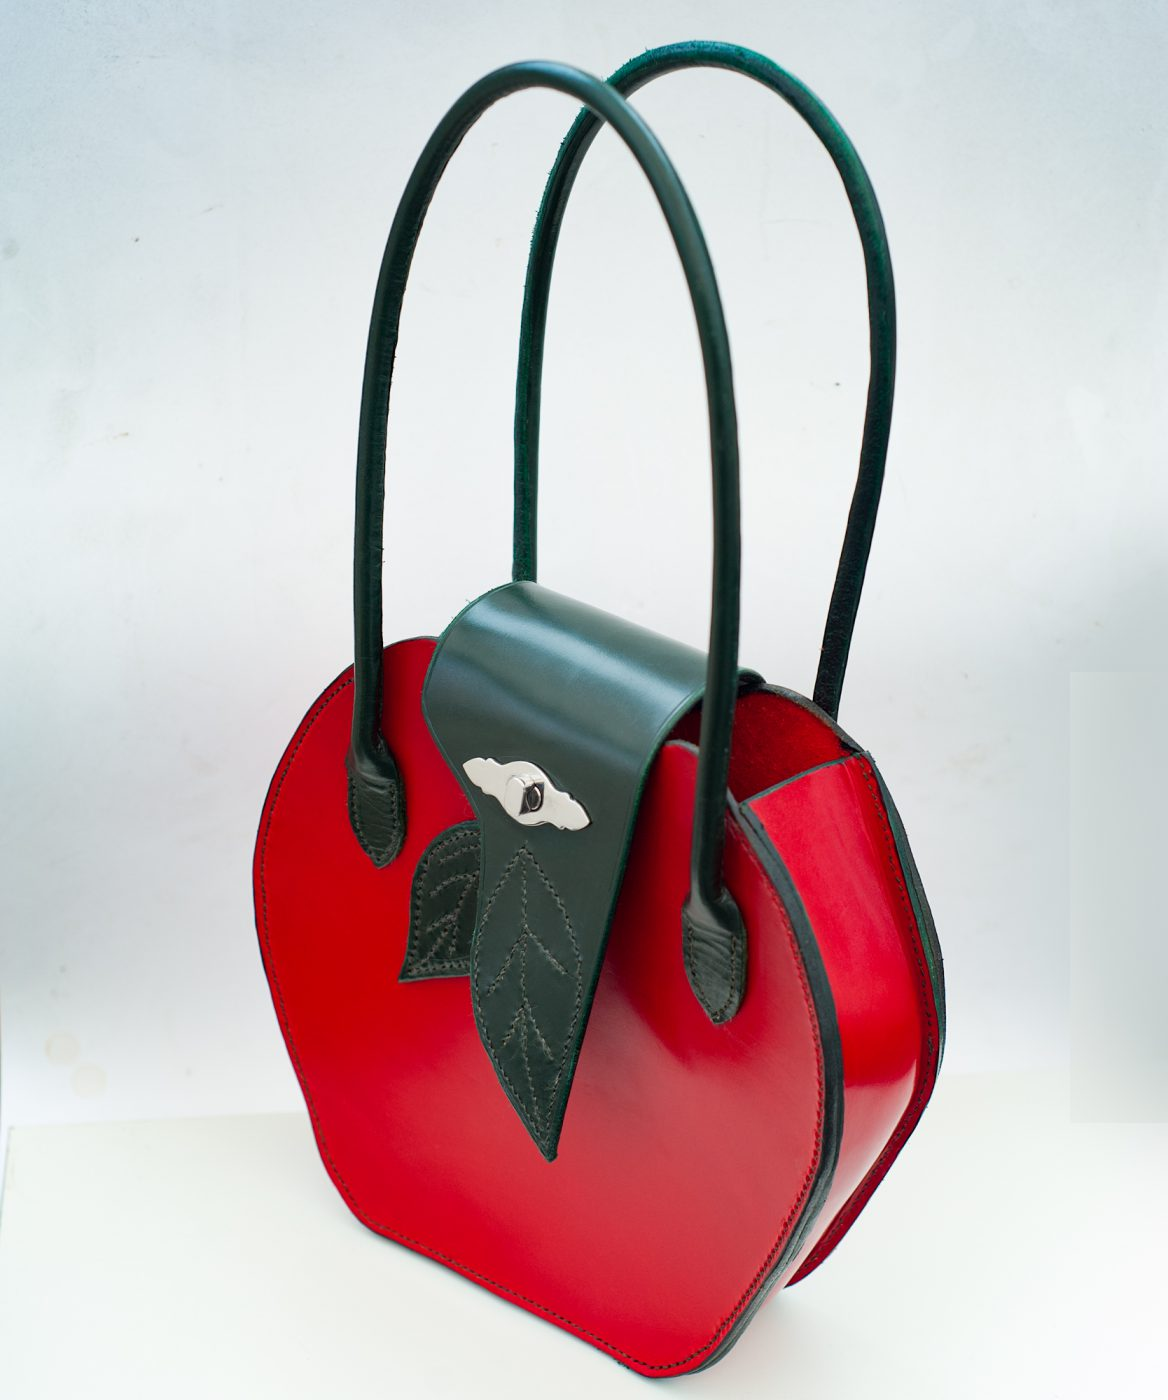 Red and Green Apple bag